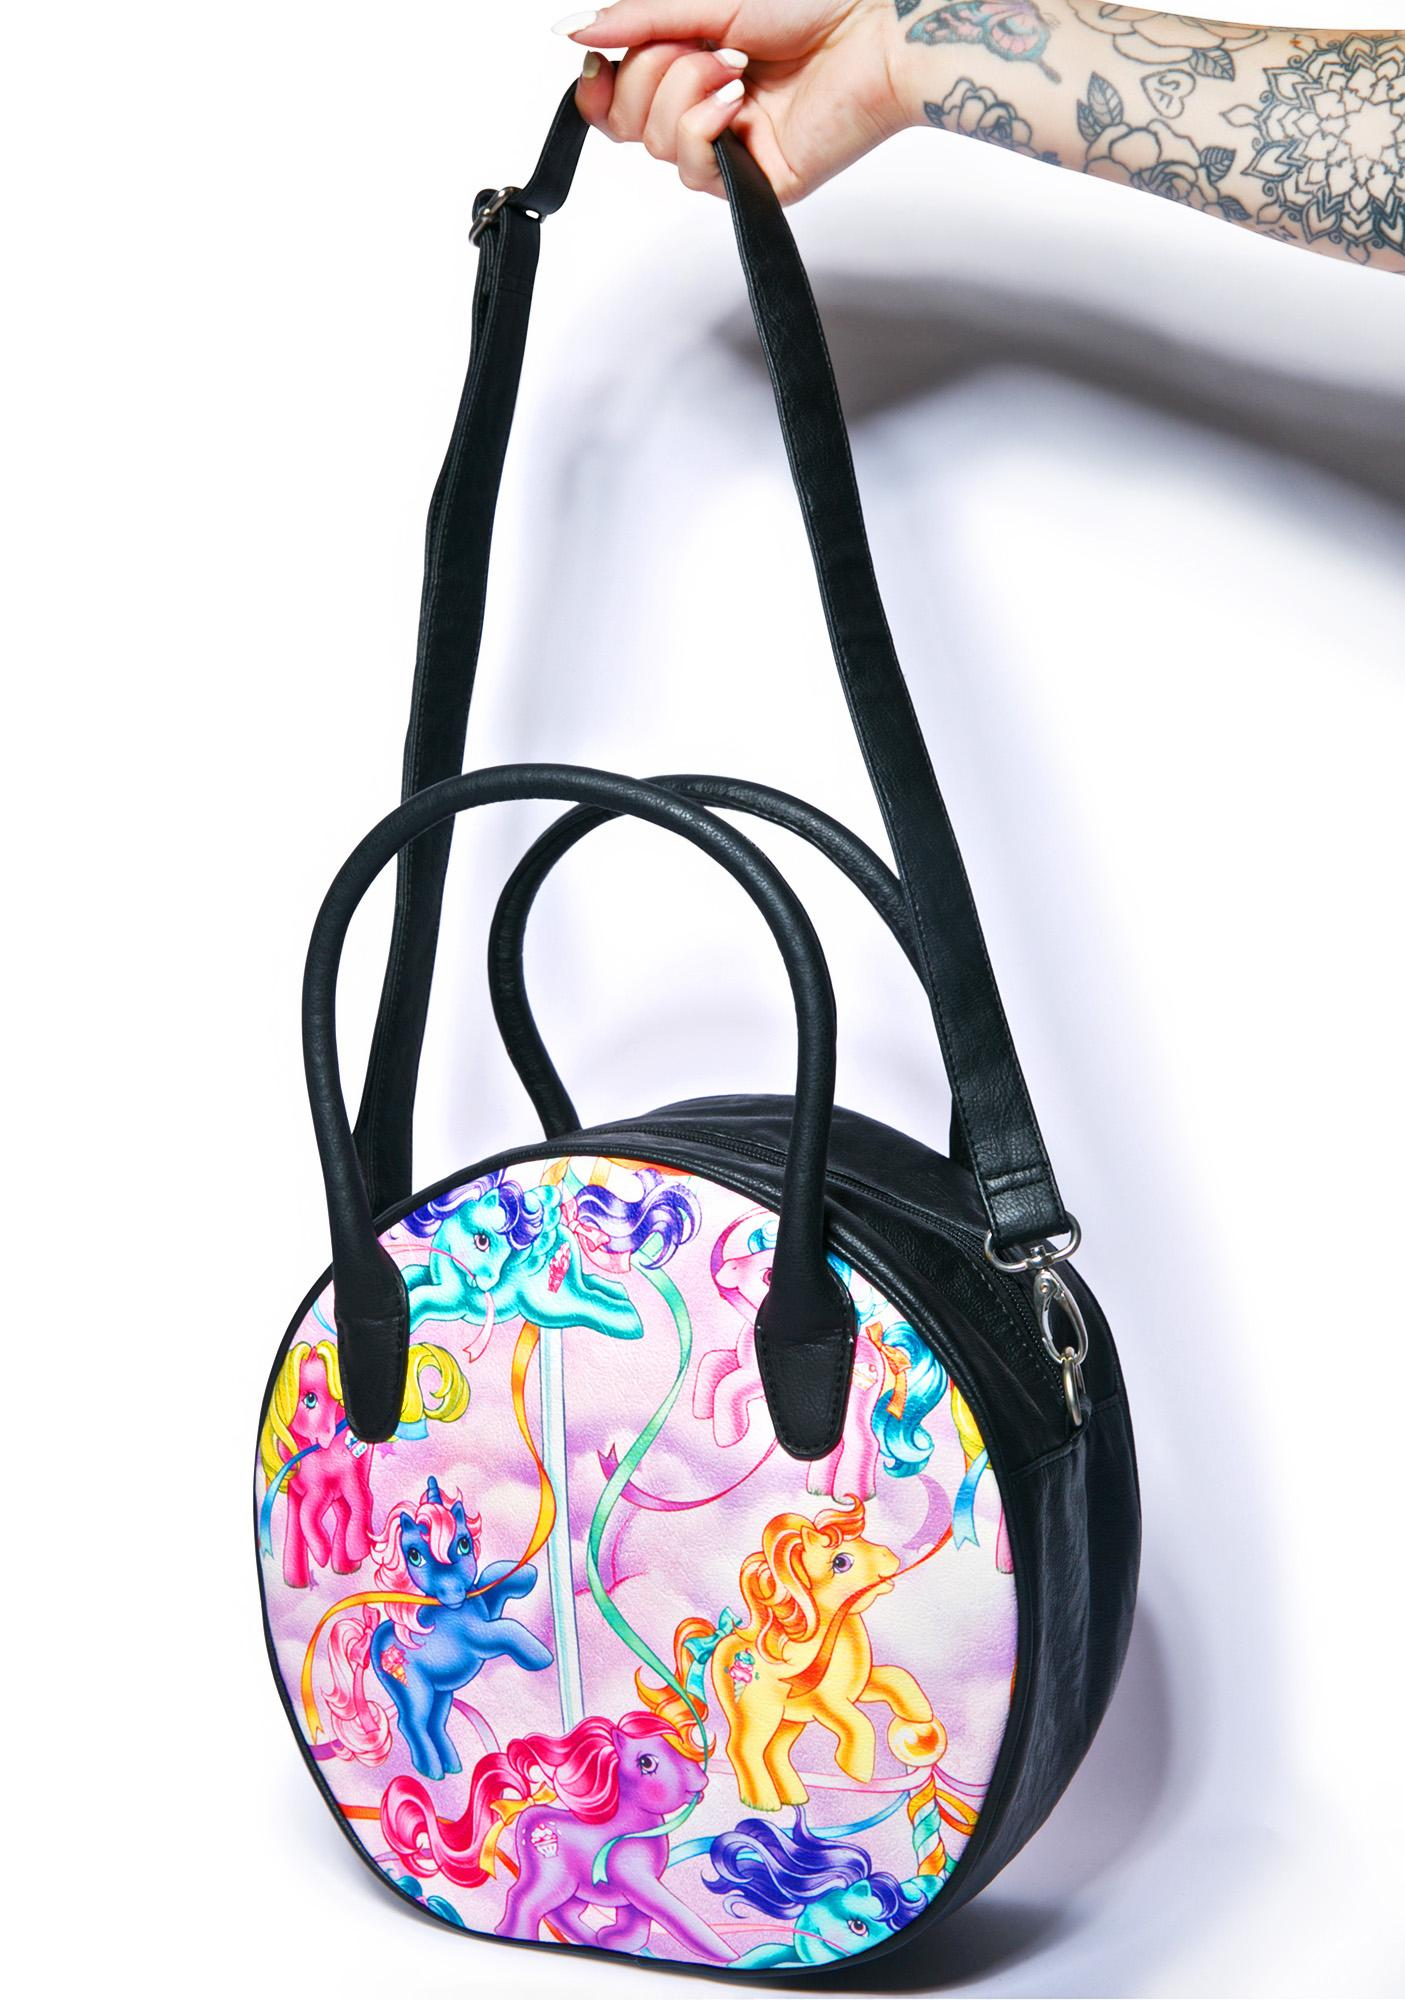 Iron Fist My Little Pony Bag